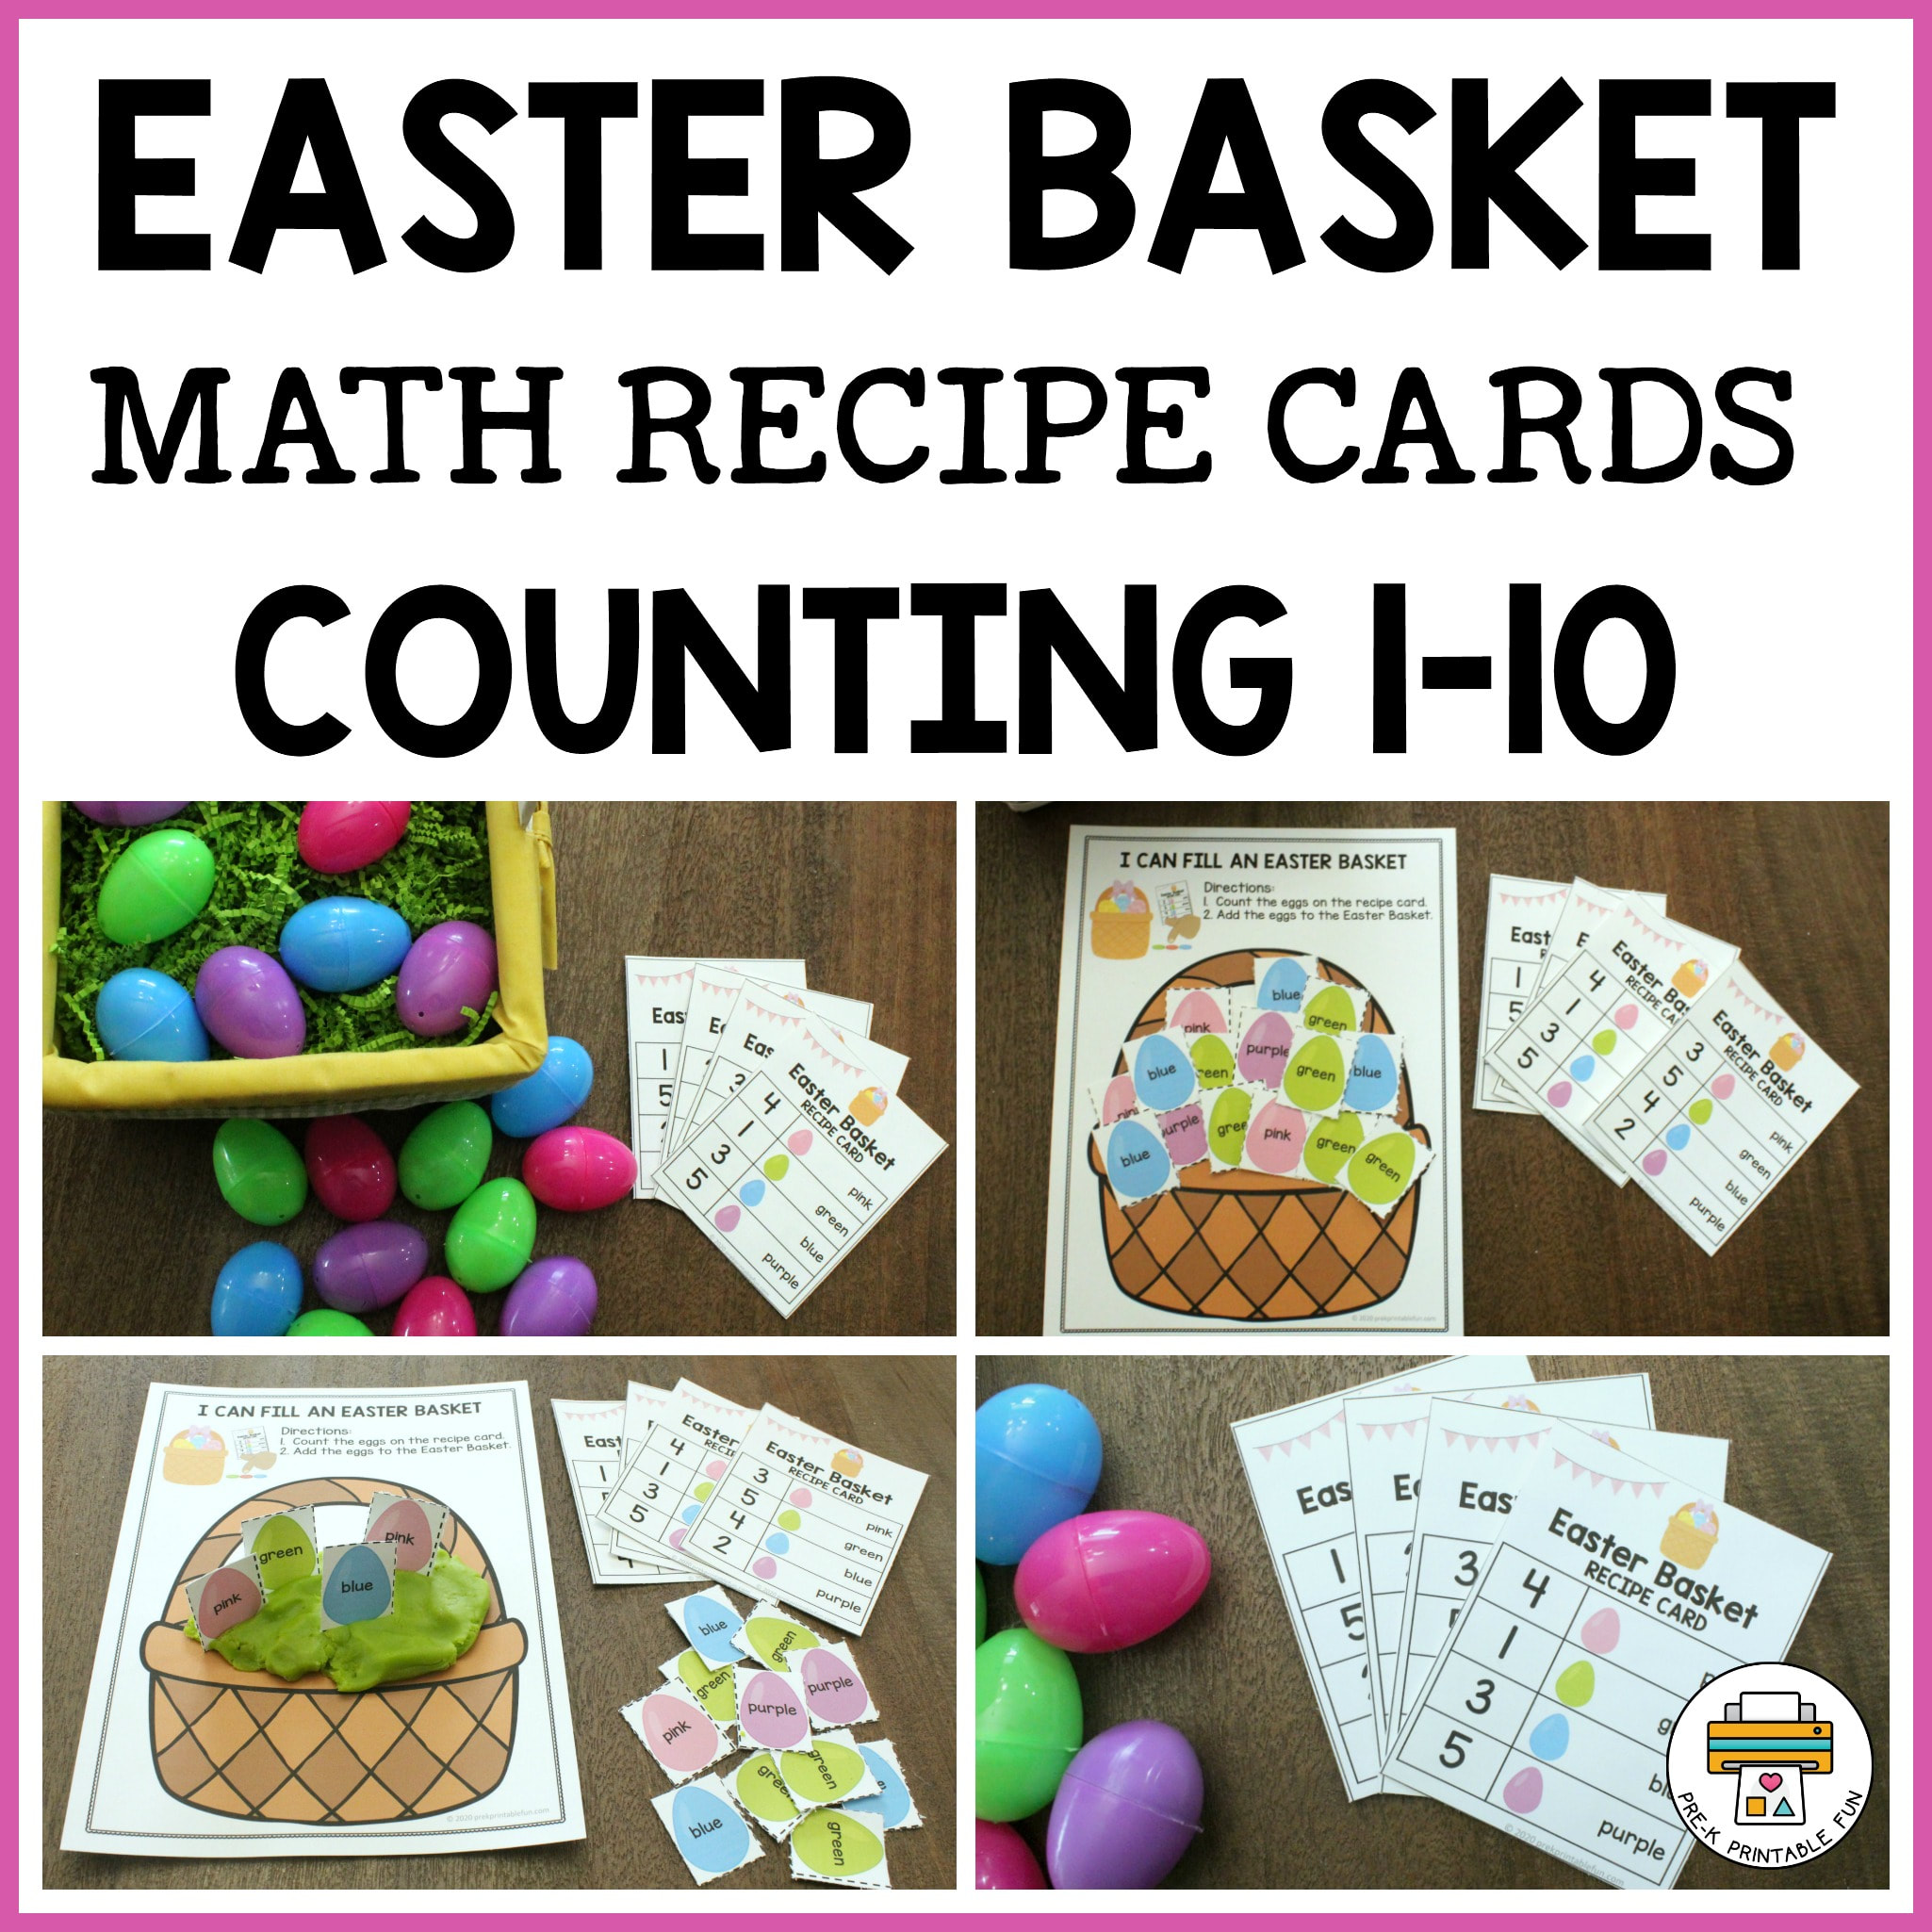 Easter Basket Math Recipe Cards Counting 1 10